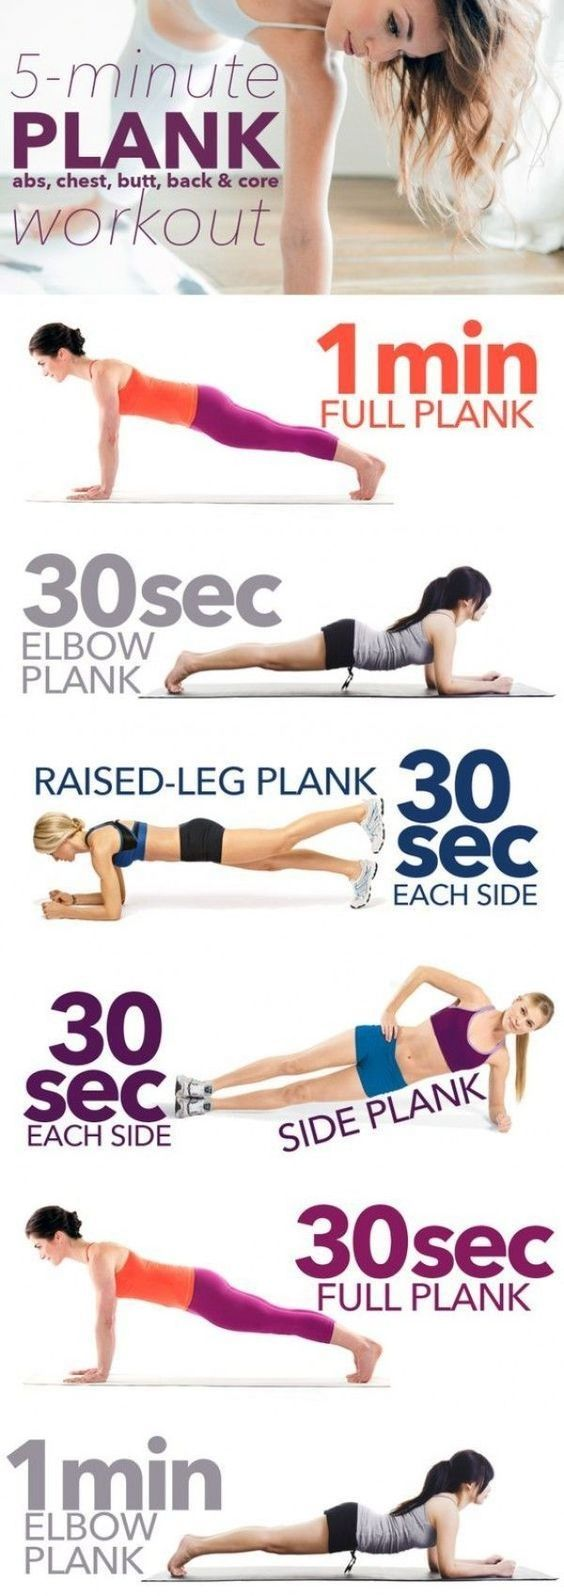 Ab Workout On Bench Ideas Plank Workout Easy Yoga Workouts Flat Belly Workout